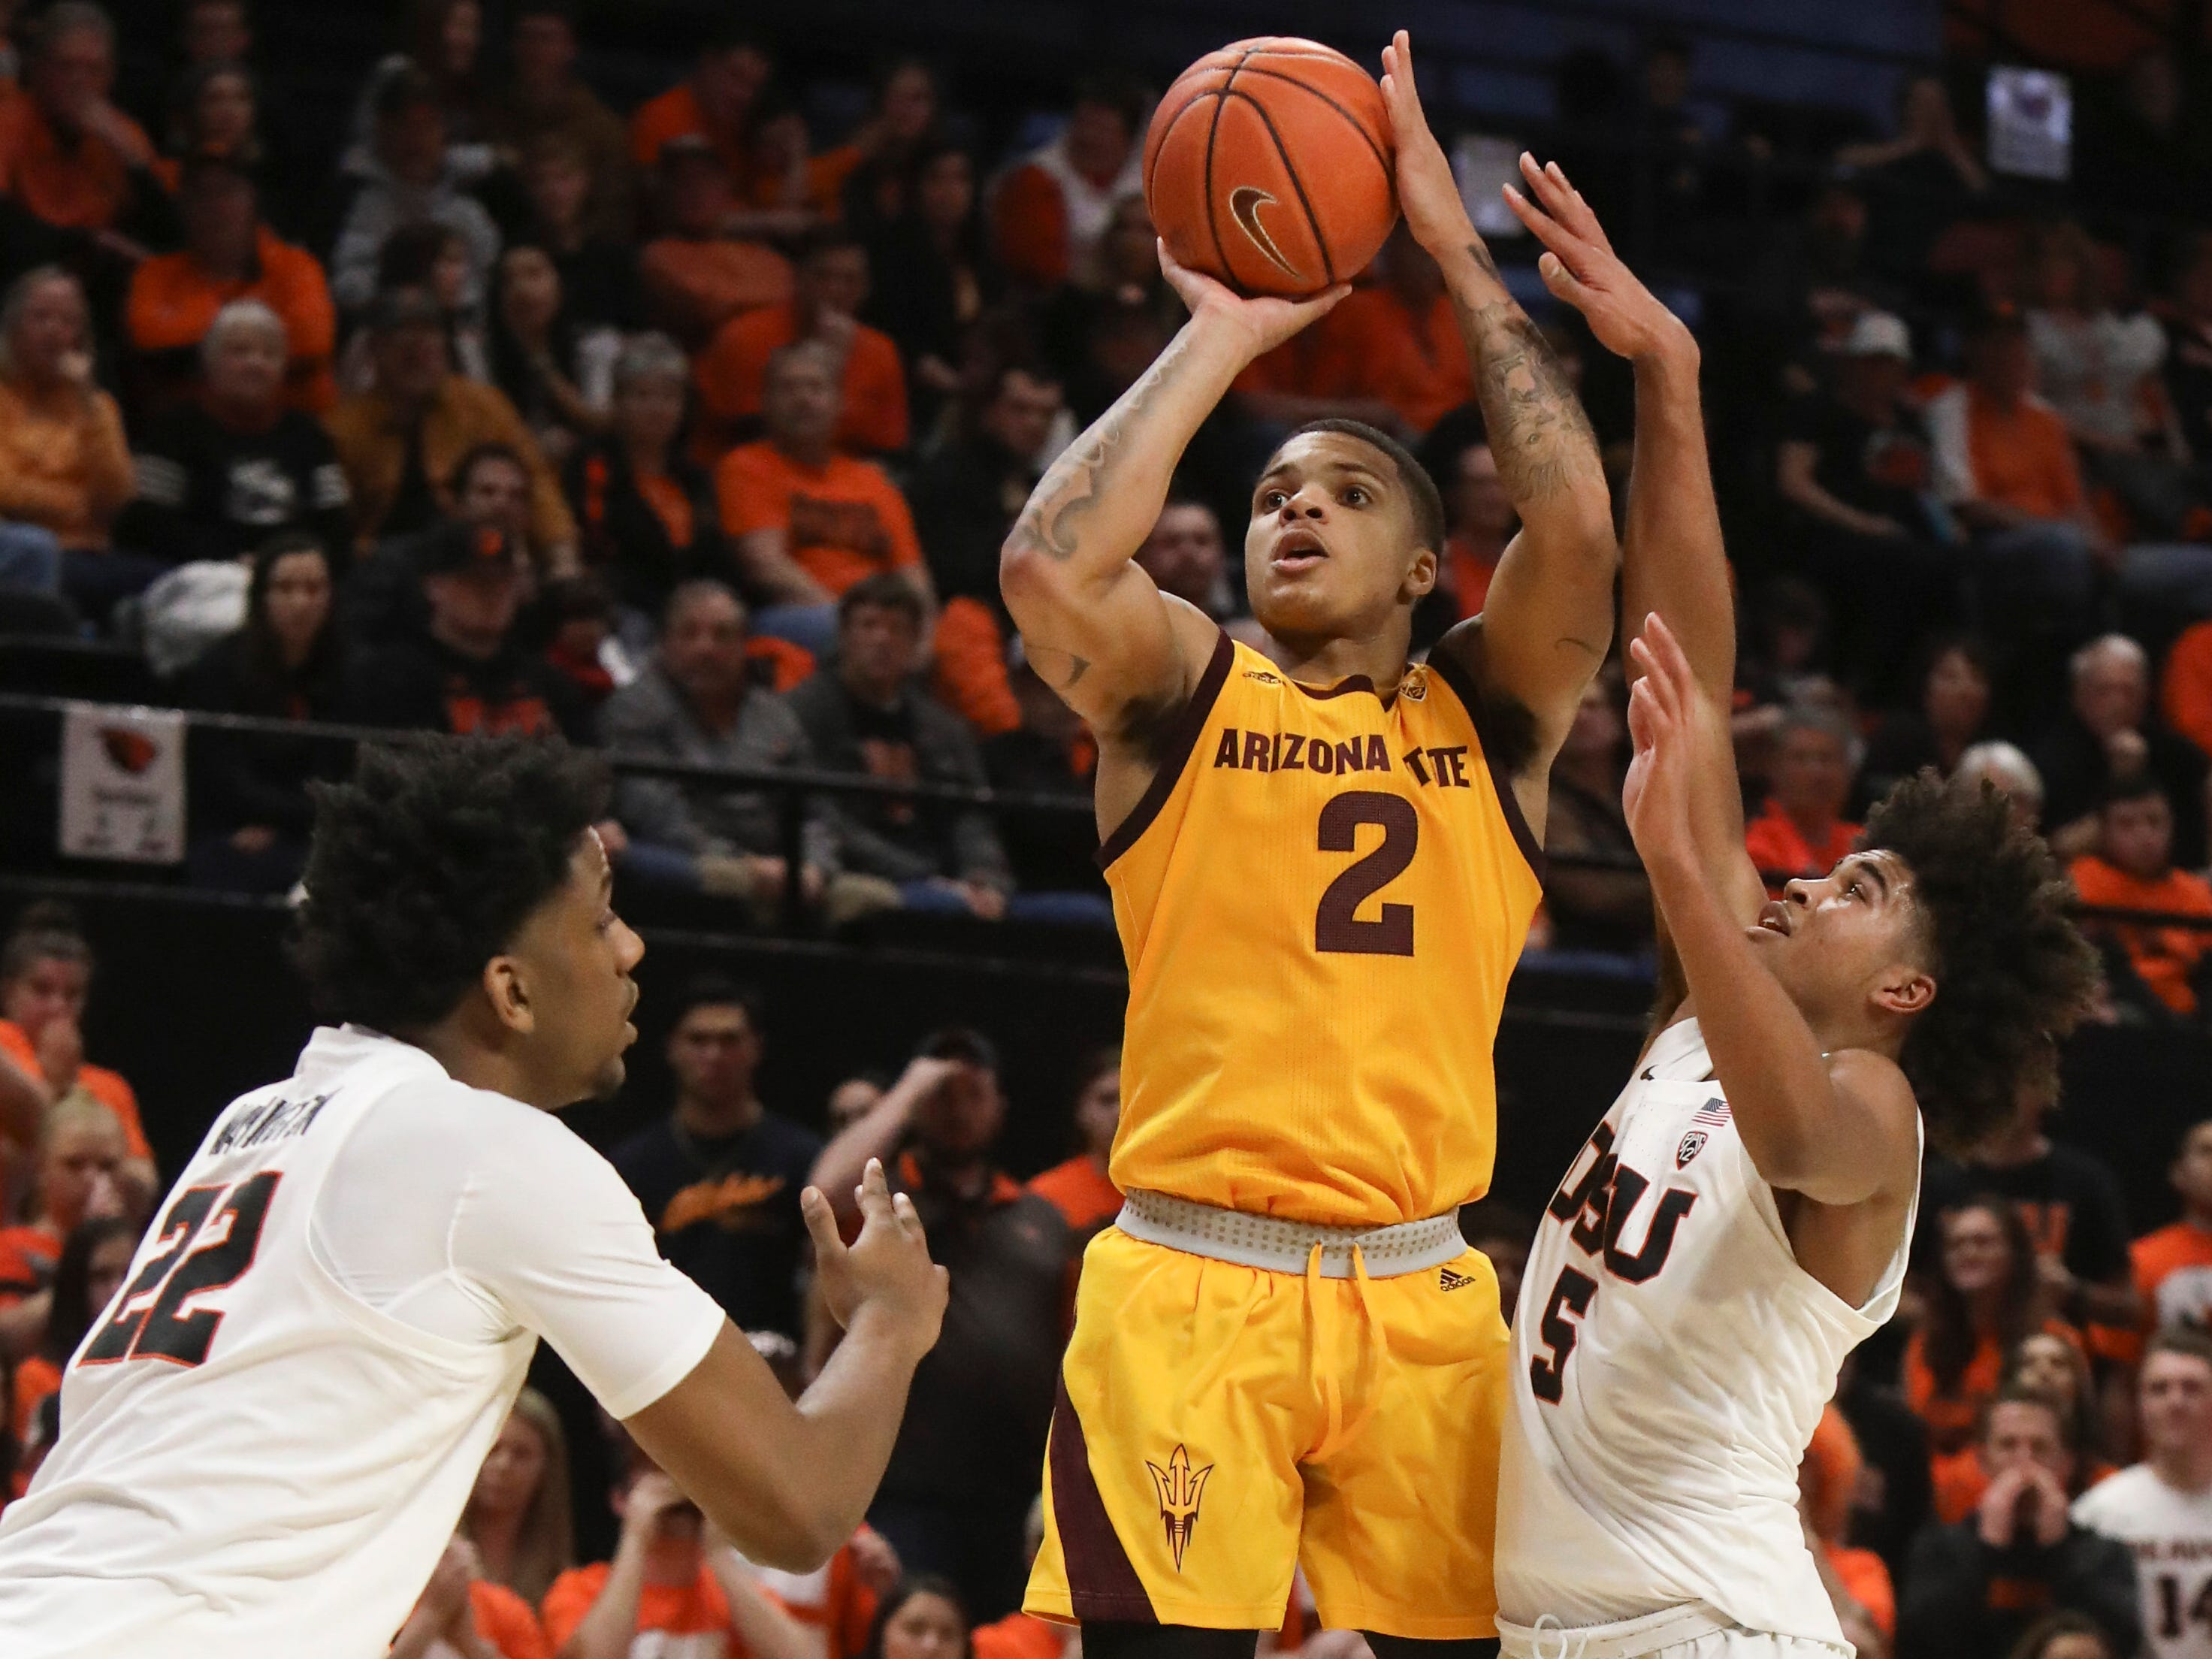 Arizona State's Rob Edwards (2) goes up for a shot against Oregon State's Warren Washington (22) and Ethan Thompson (5) during the second half of an NCAA college basketball game in Corvallis, Ore., Sunday, March 3, 2019. Arizona State won 74-71.